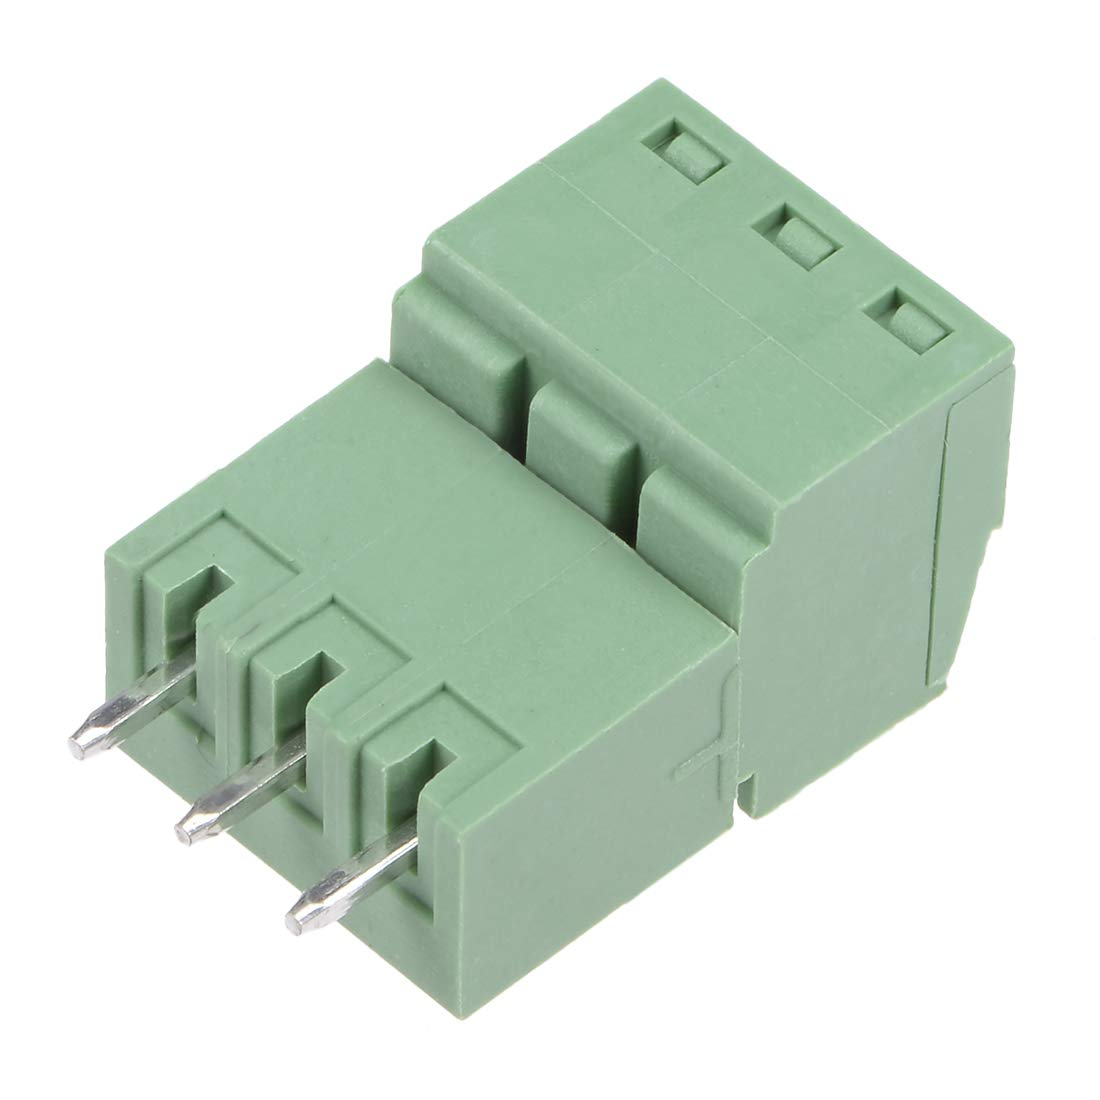 uxcell 5 Pairs 3.5mm Pitch 3Pin Pluggable Terminal Block Connector Male and Female for PCB